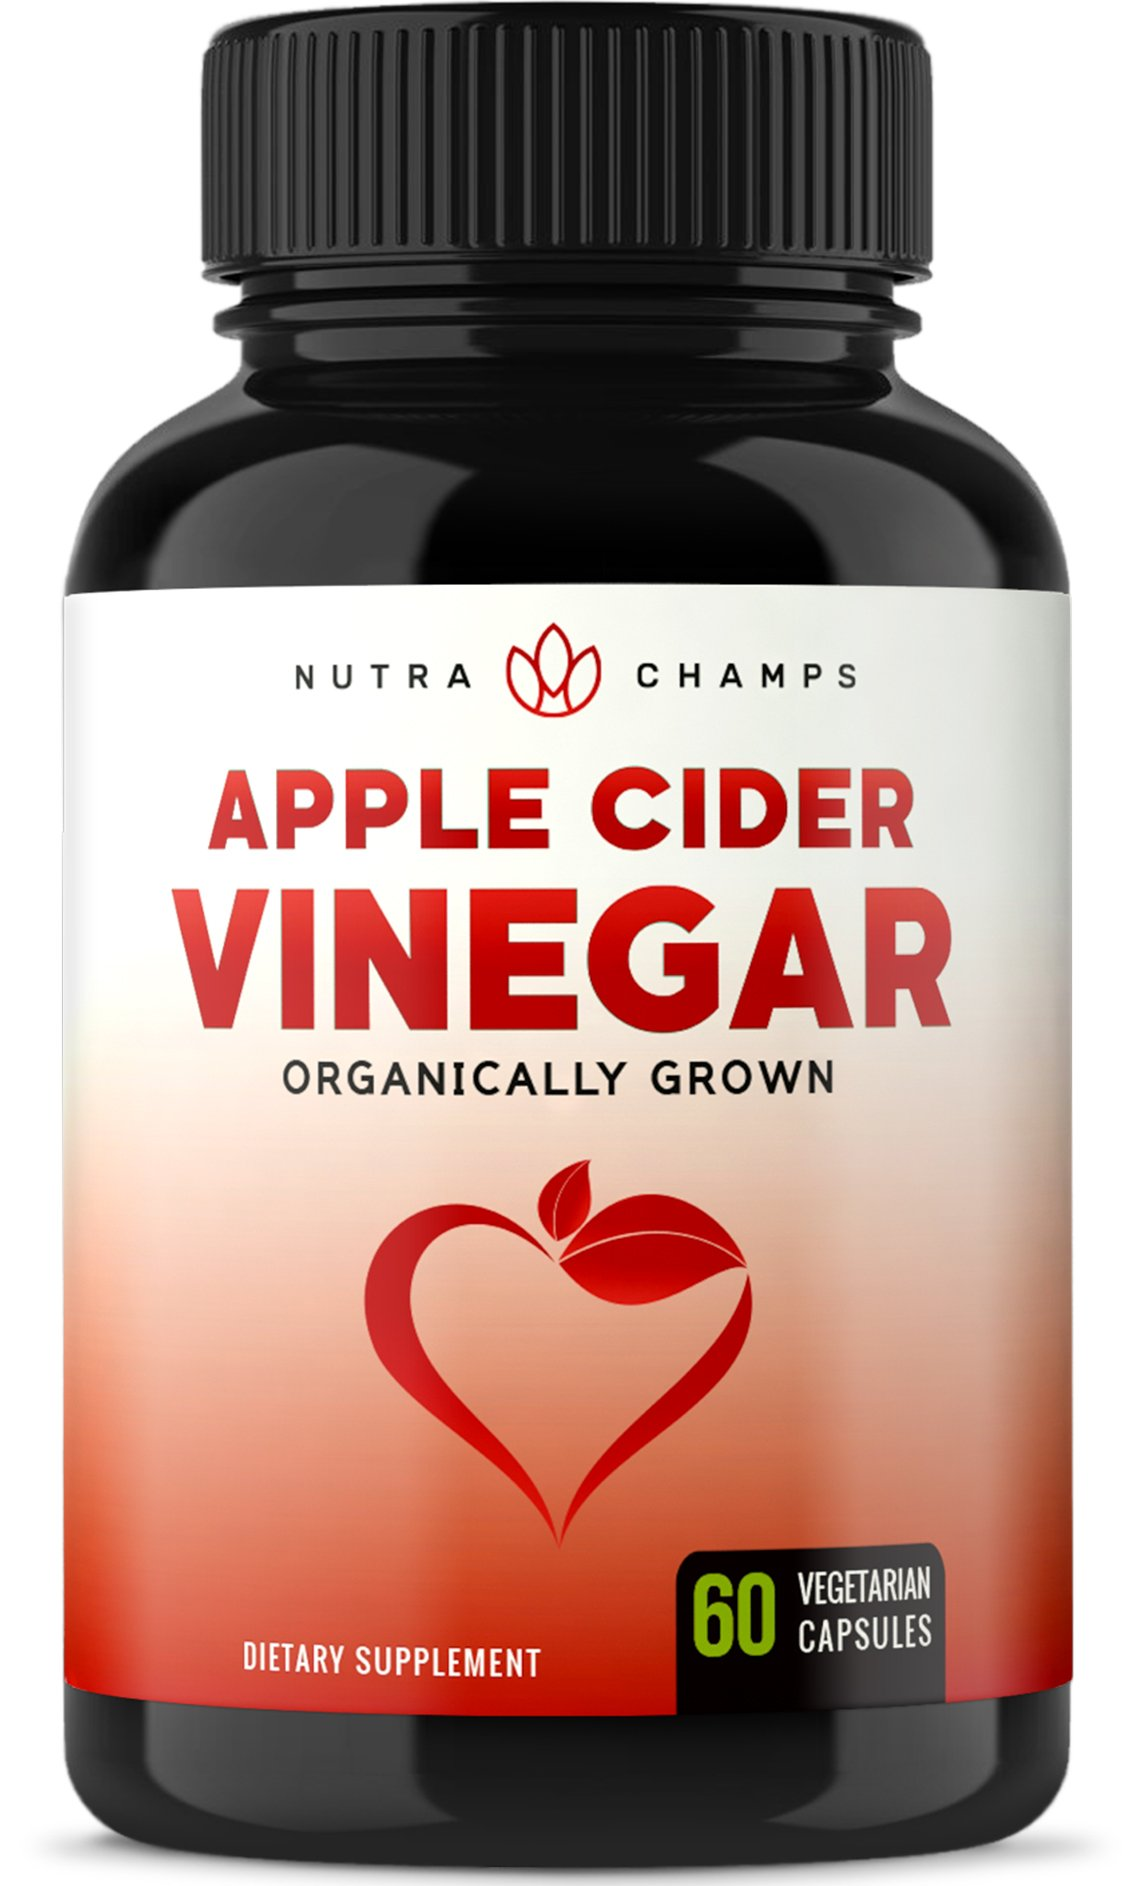 Organic Apple Cider Vinegar Capsules - 1000mg Natural Cider Supplement for Weight Loss, Detox & Digestion Support - Premium Cleanser 500mg Vegan Pills - Superior Absorption with Black Pepper by NutraChamps